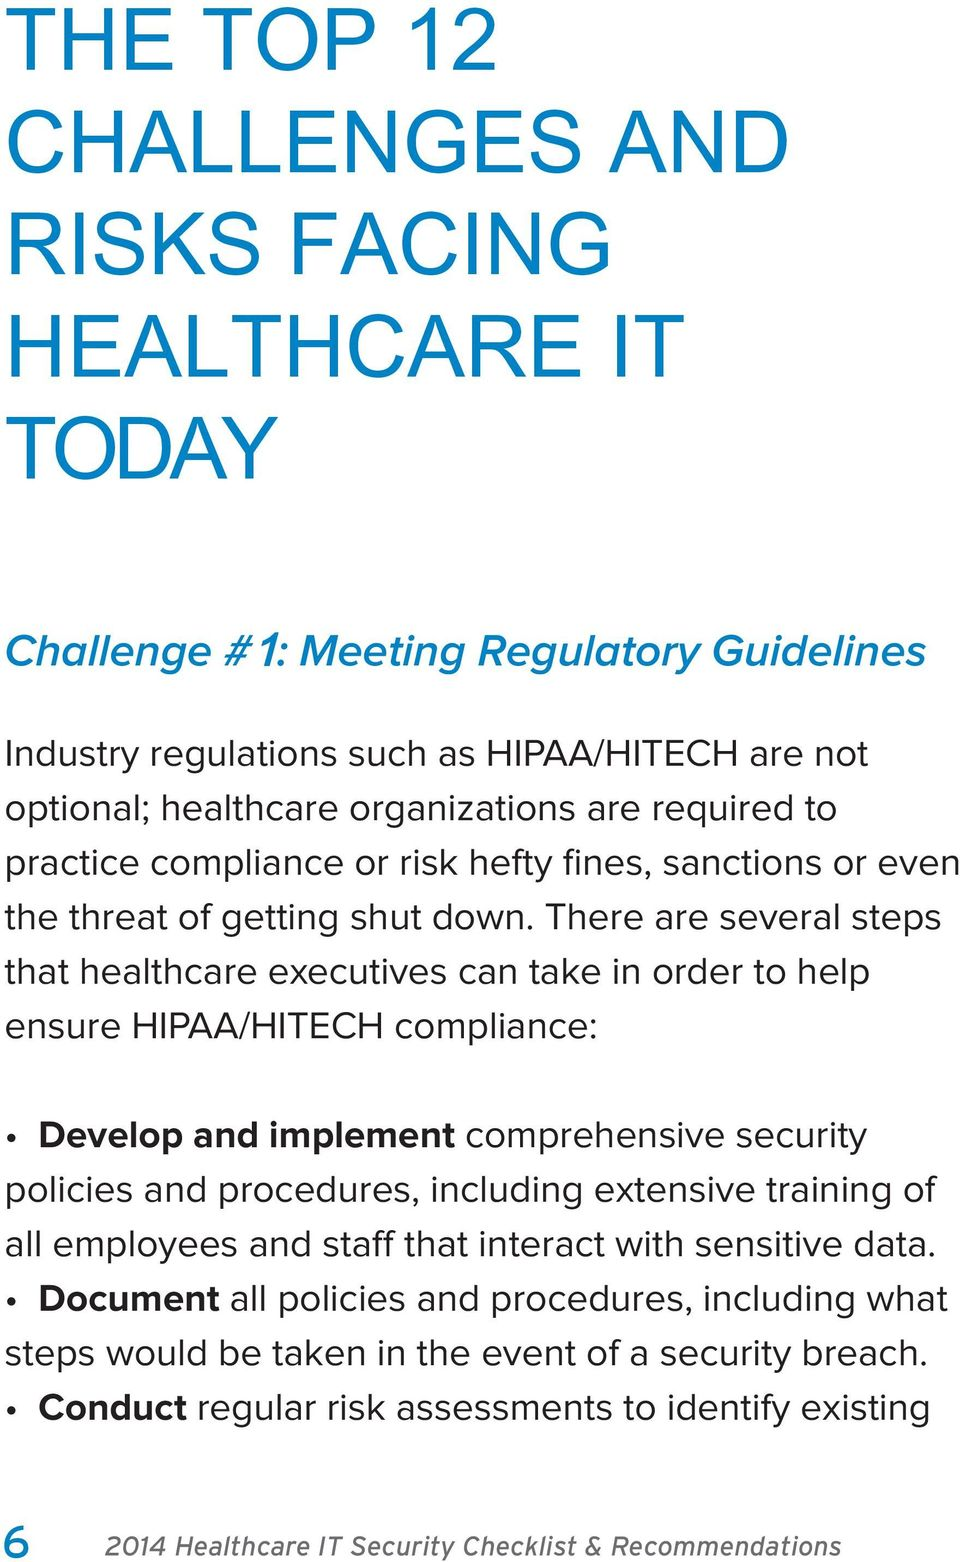 There are several steps that healthcare executives can take in order to help ensure HIPAA/HITECH compliance: Develop and implement comprehensive security policies and procedures, including